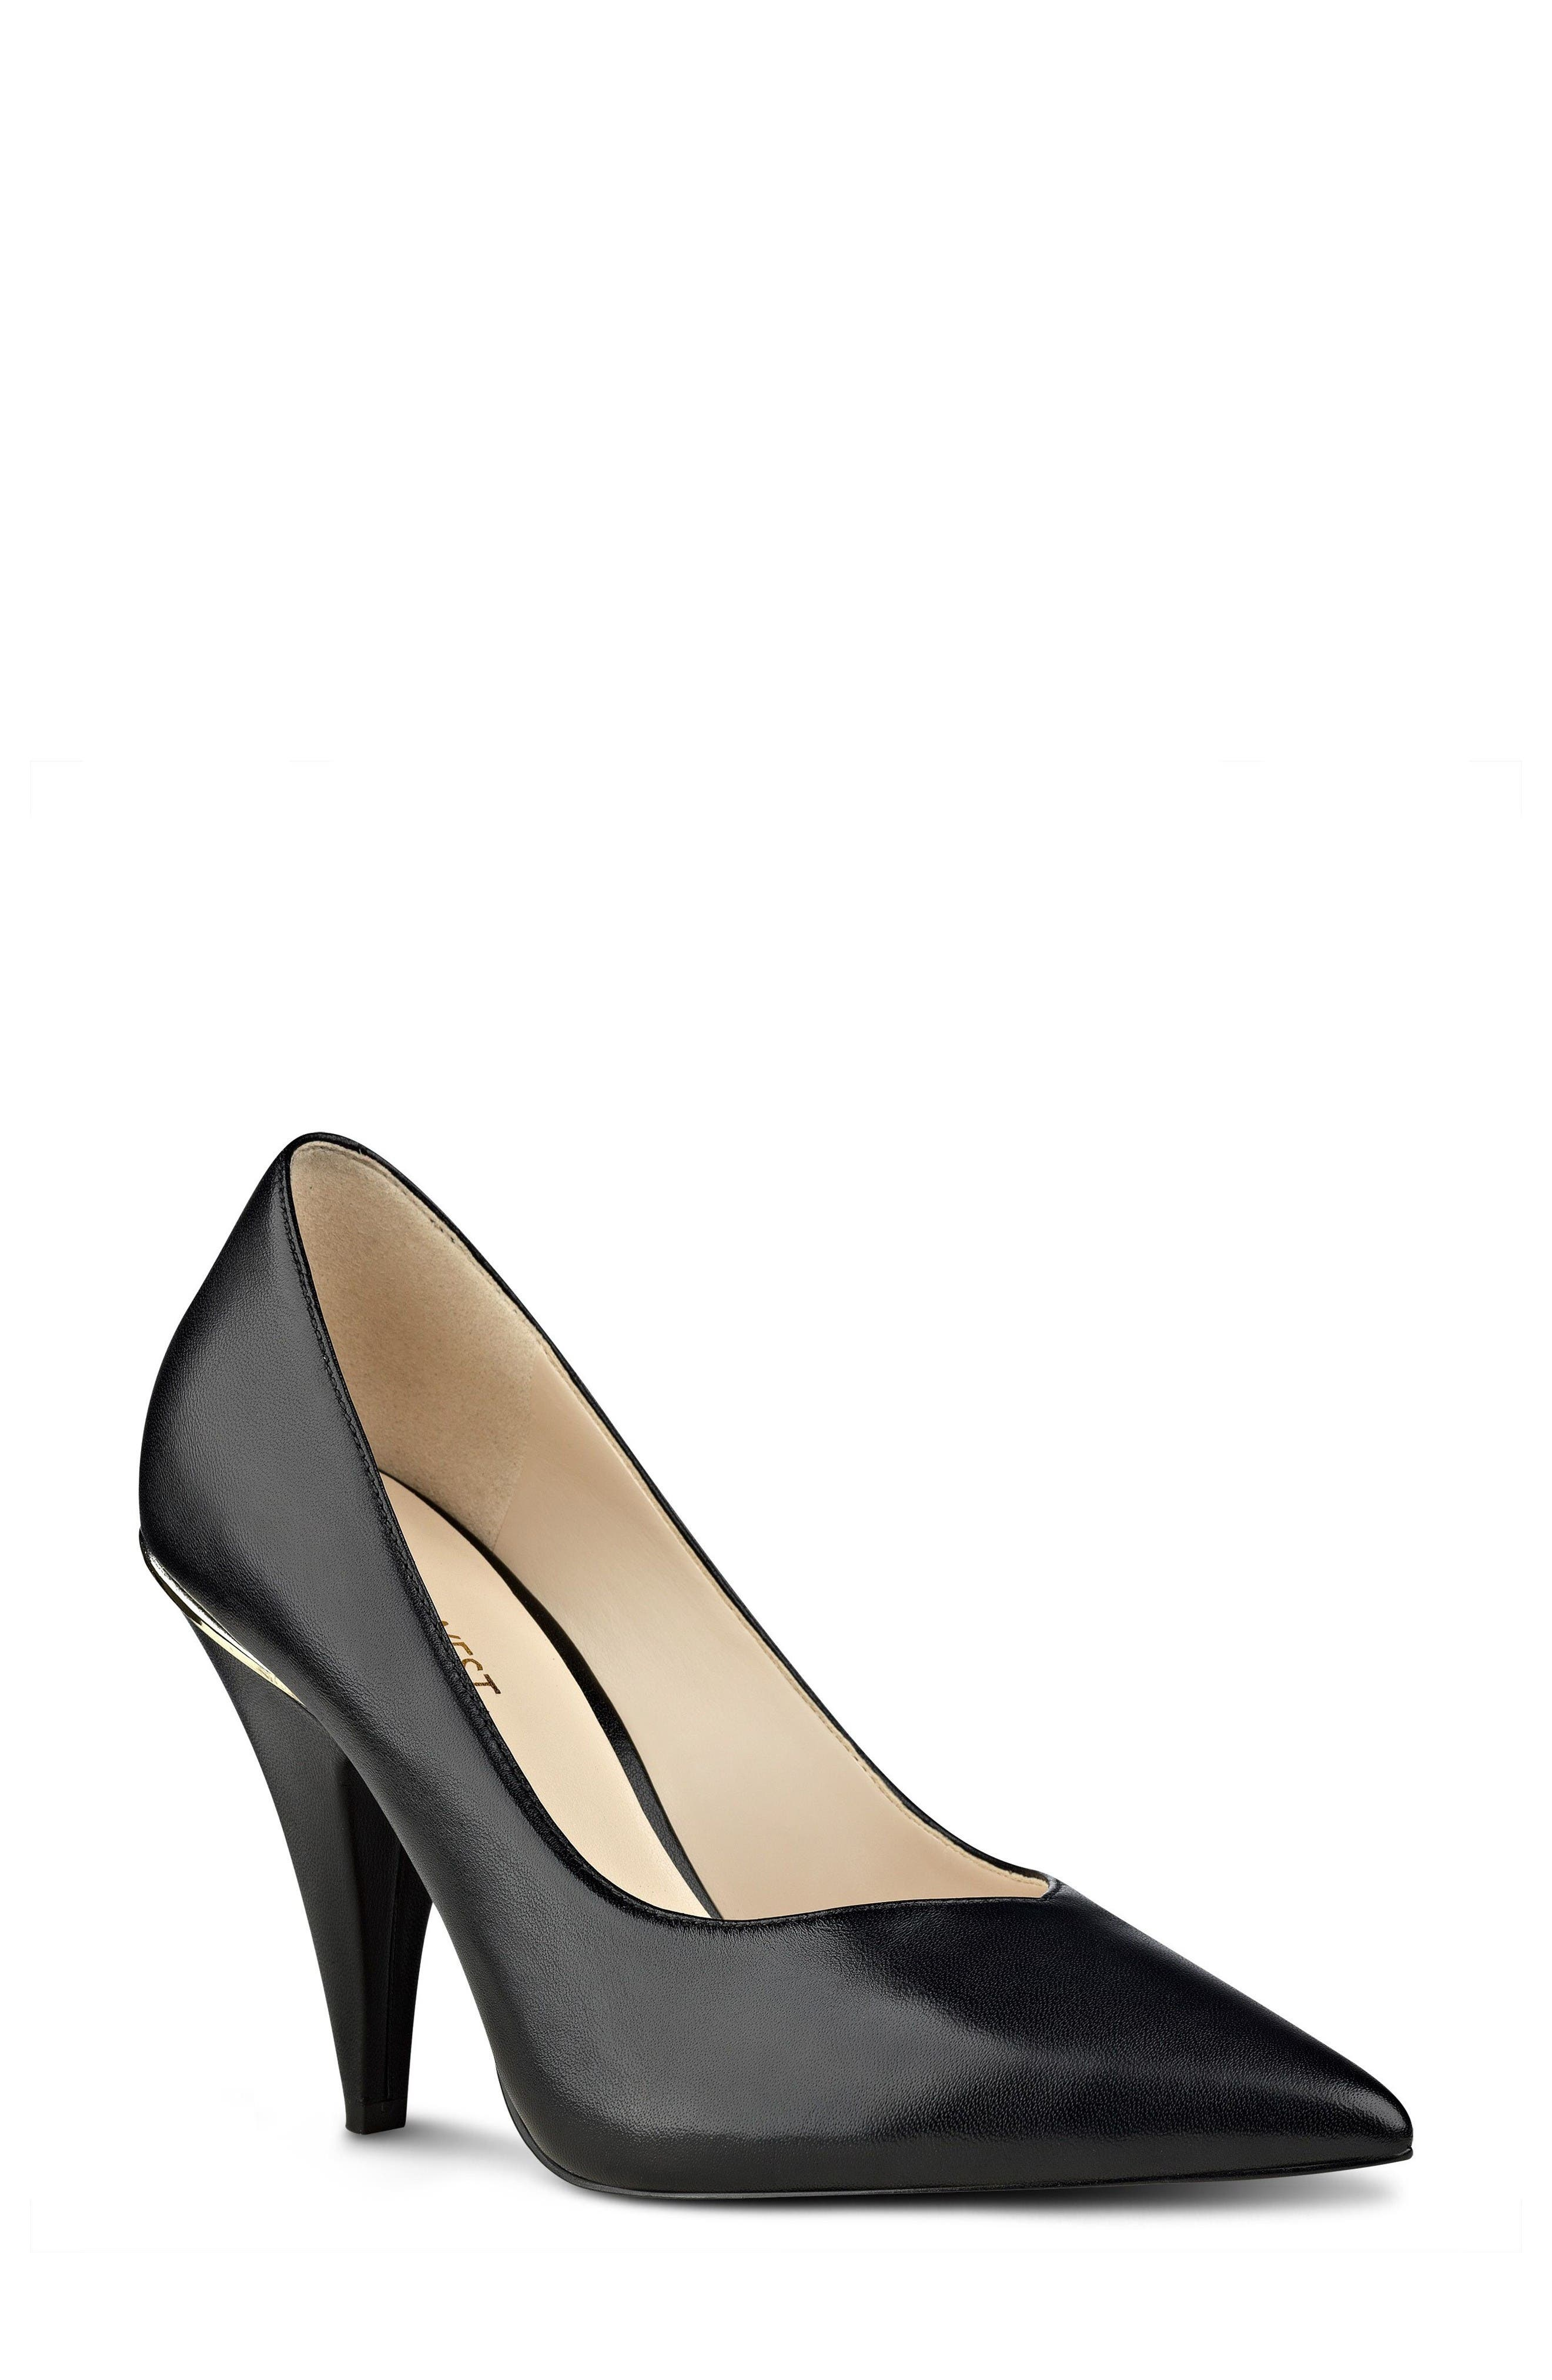 NINE WEST Whistles Pump